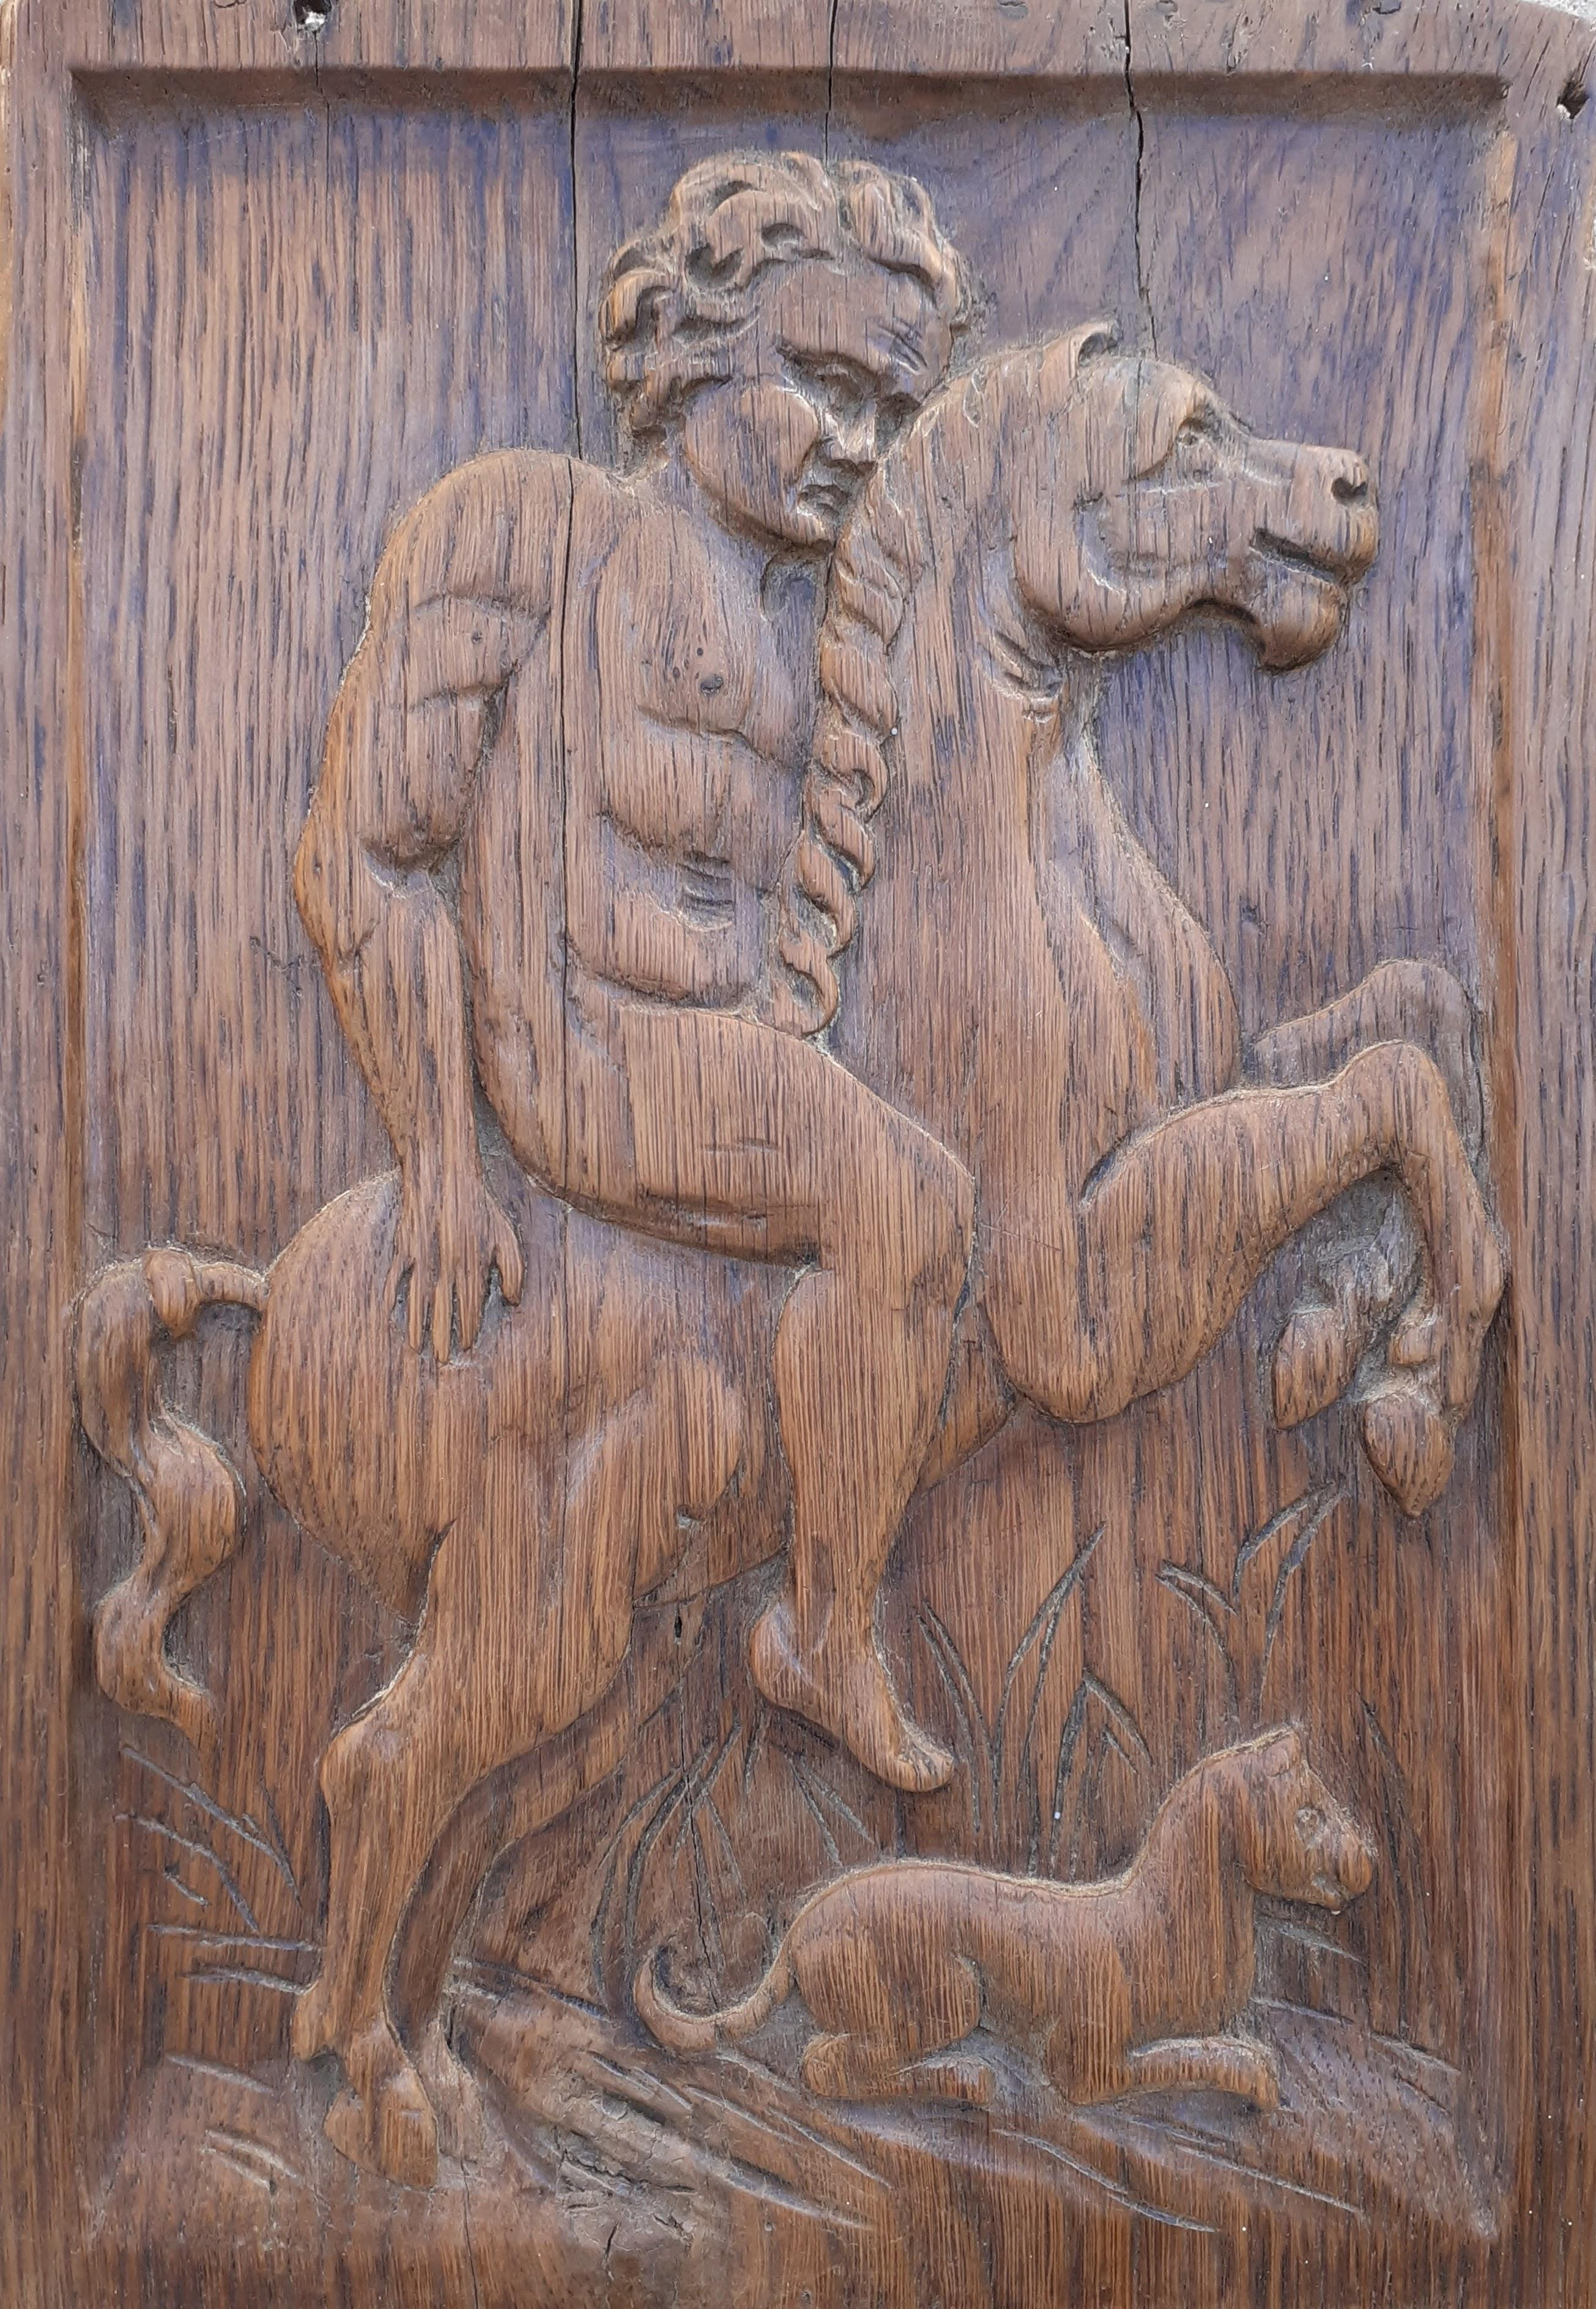 Mythological scene: naked male rider and his dog French relief sculpture carving